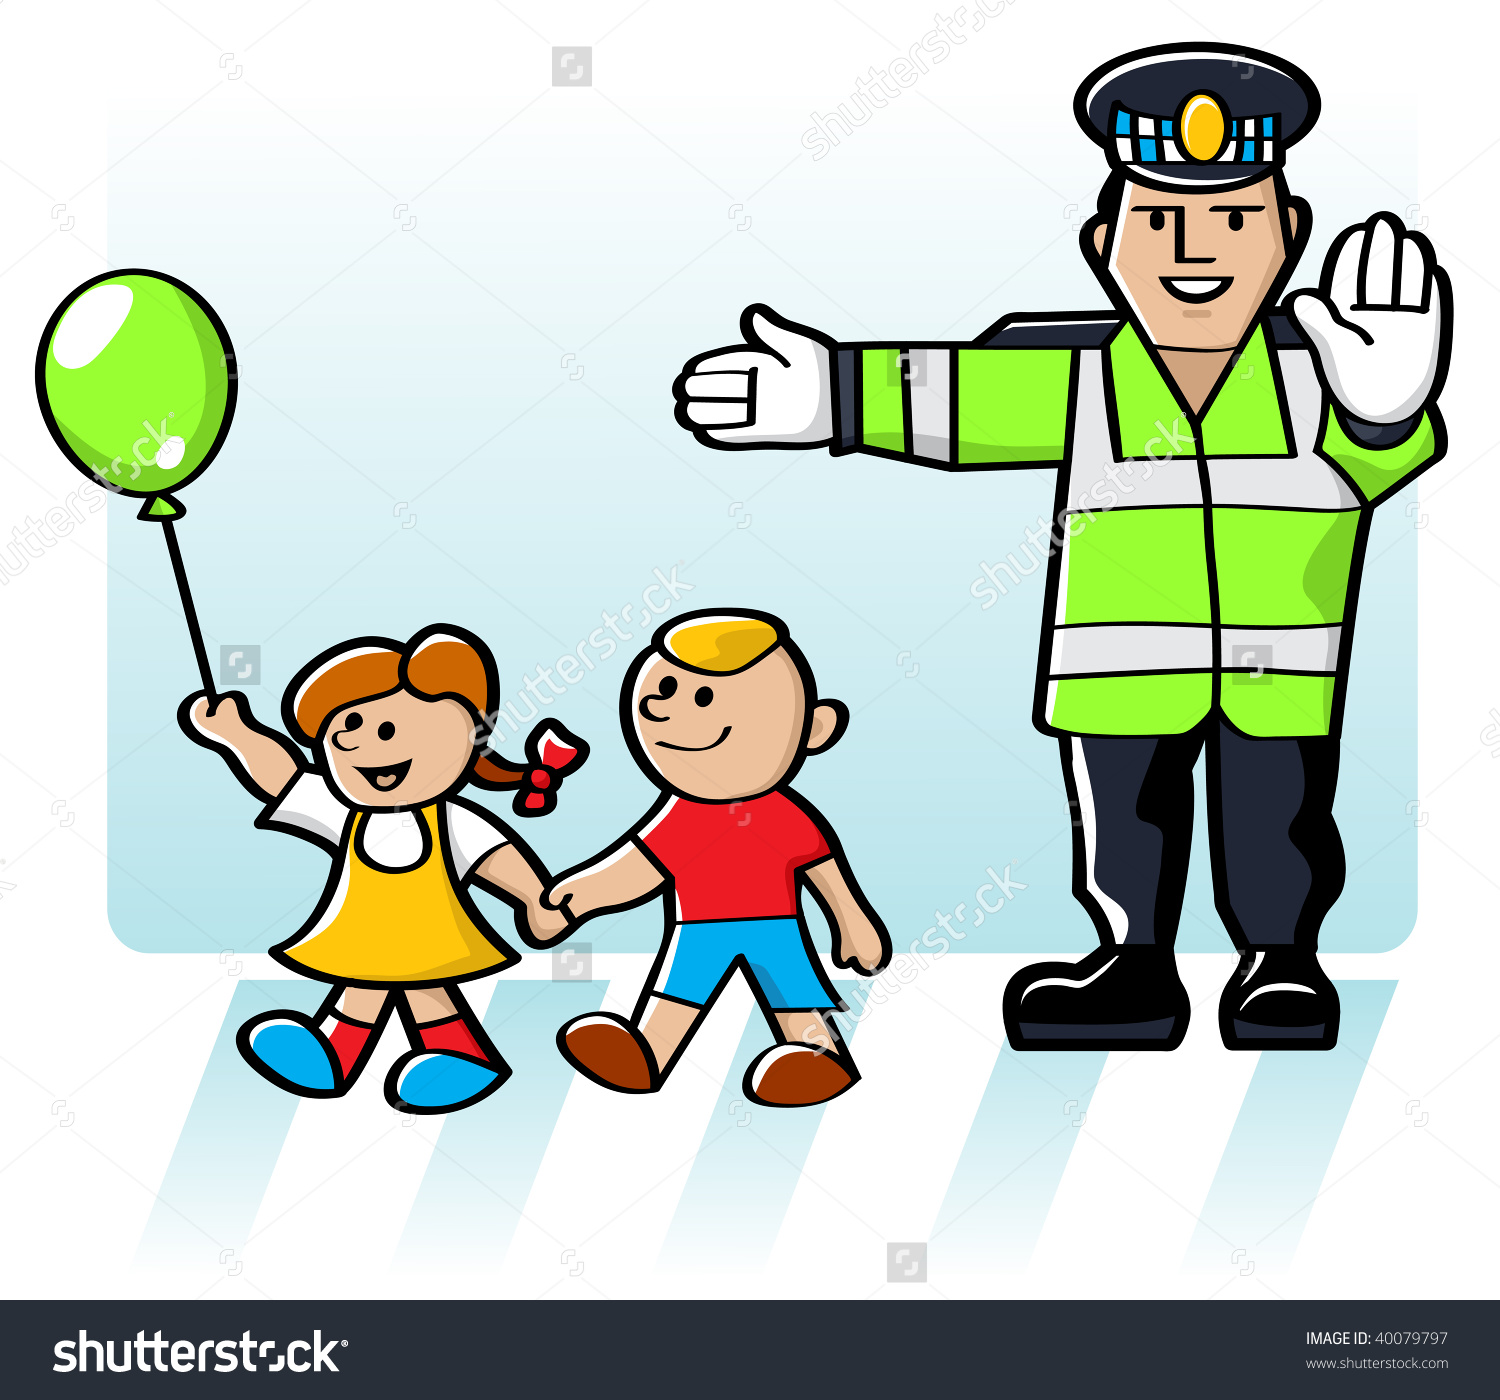 Fun clipart they Safe collection Clipart 17575 Kids